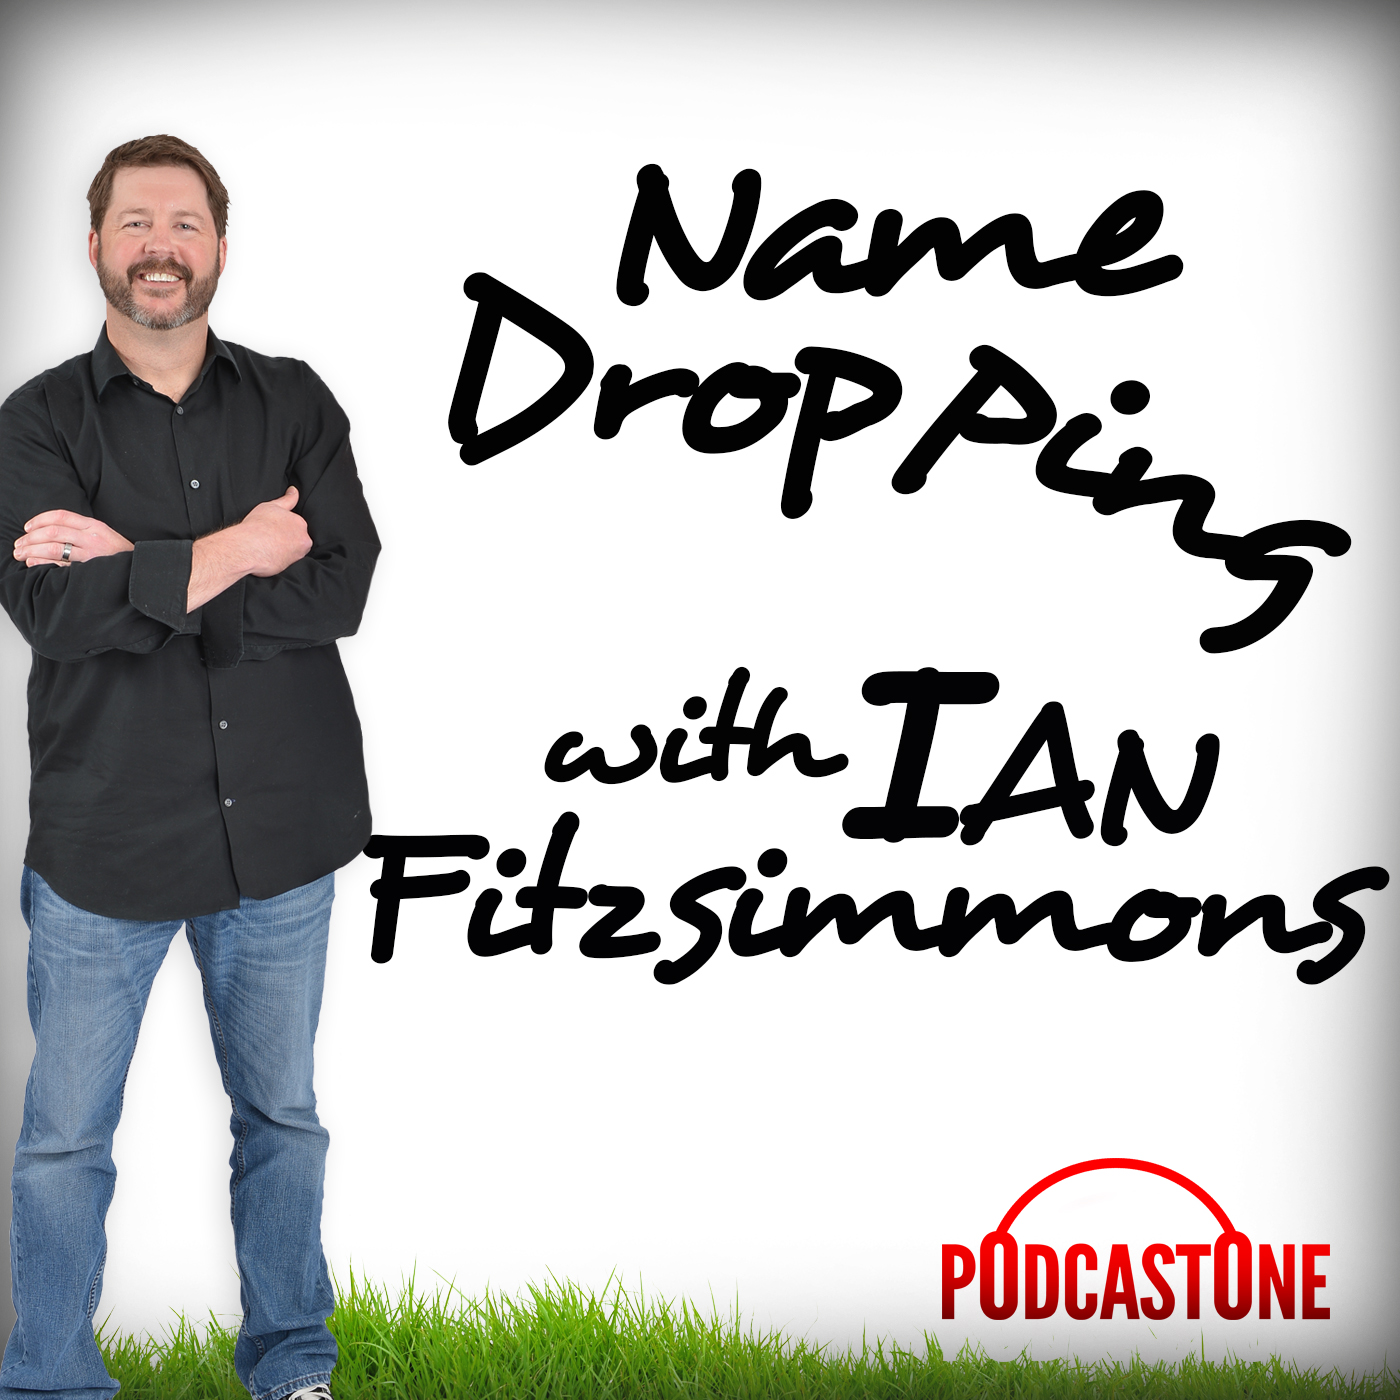 Name Dropping with Ian Fitzsimmons